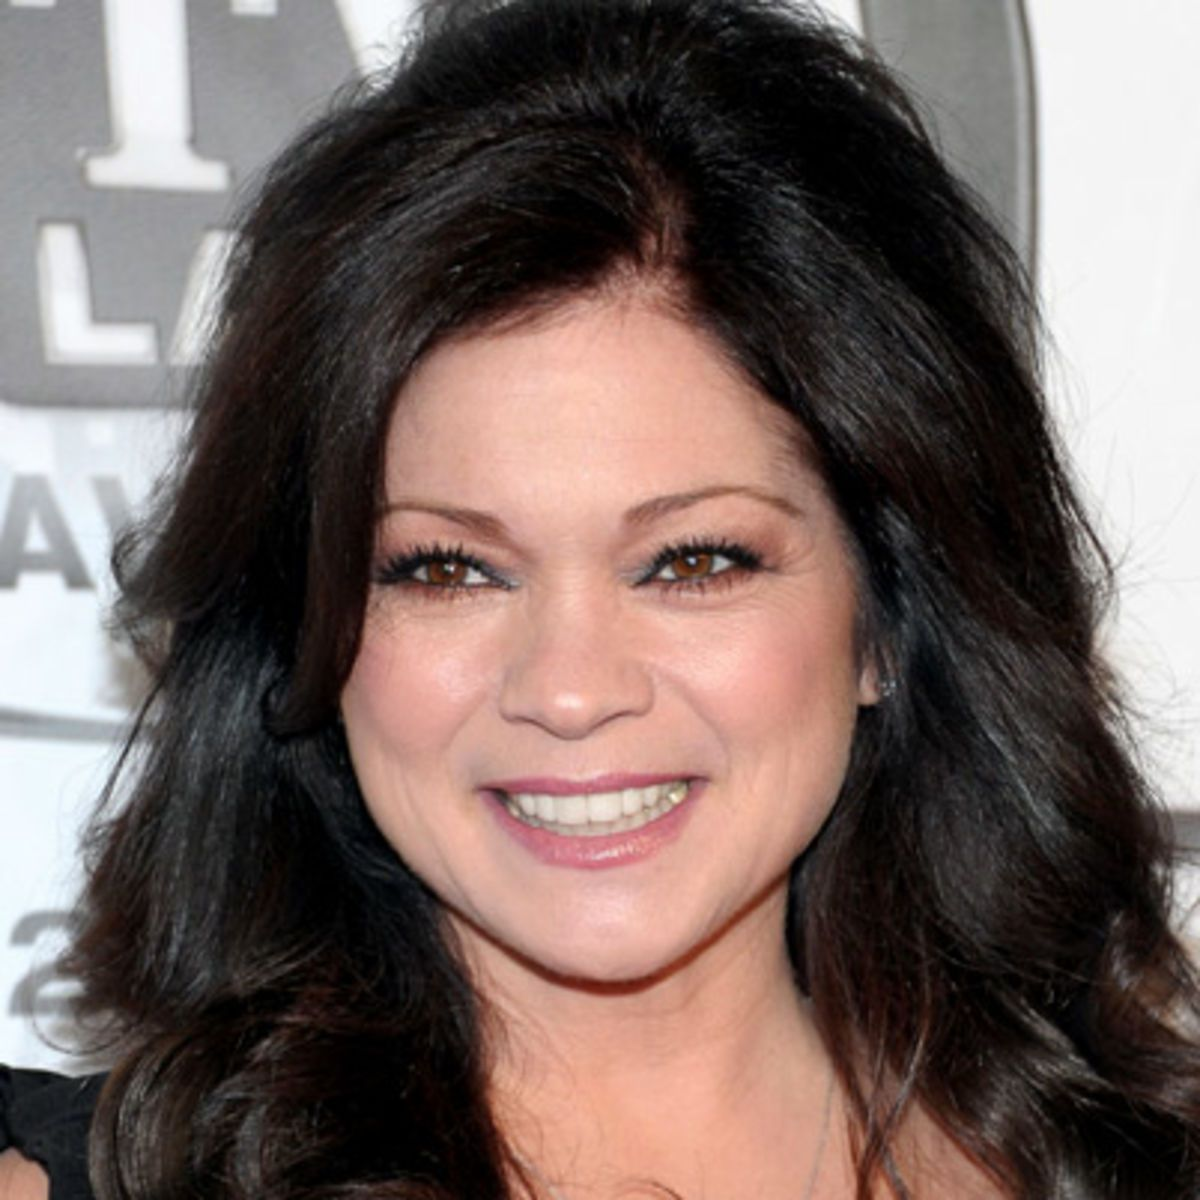 Thinking Of Going Even Darker Valerie Bertinelli Couture Hairstyles Celebrities Female